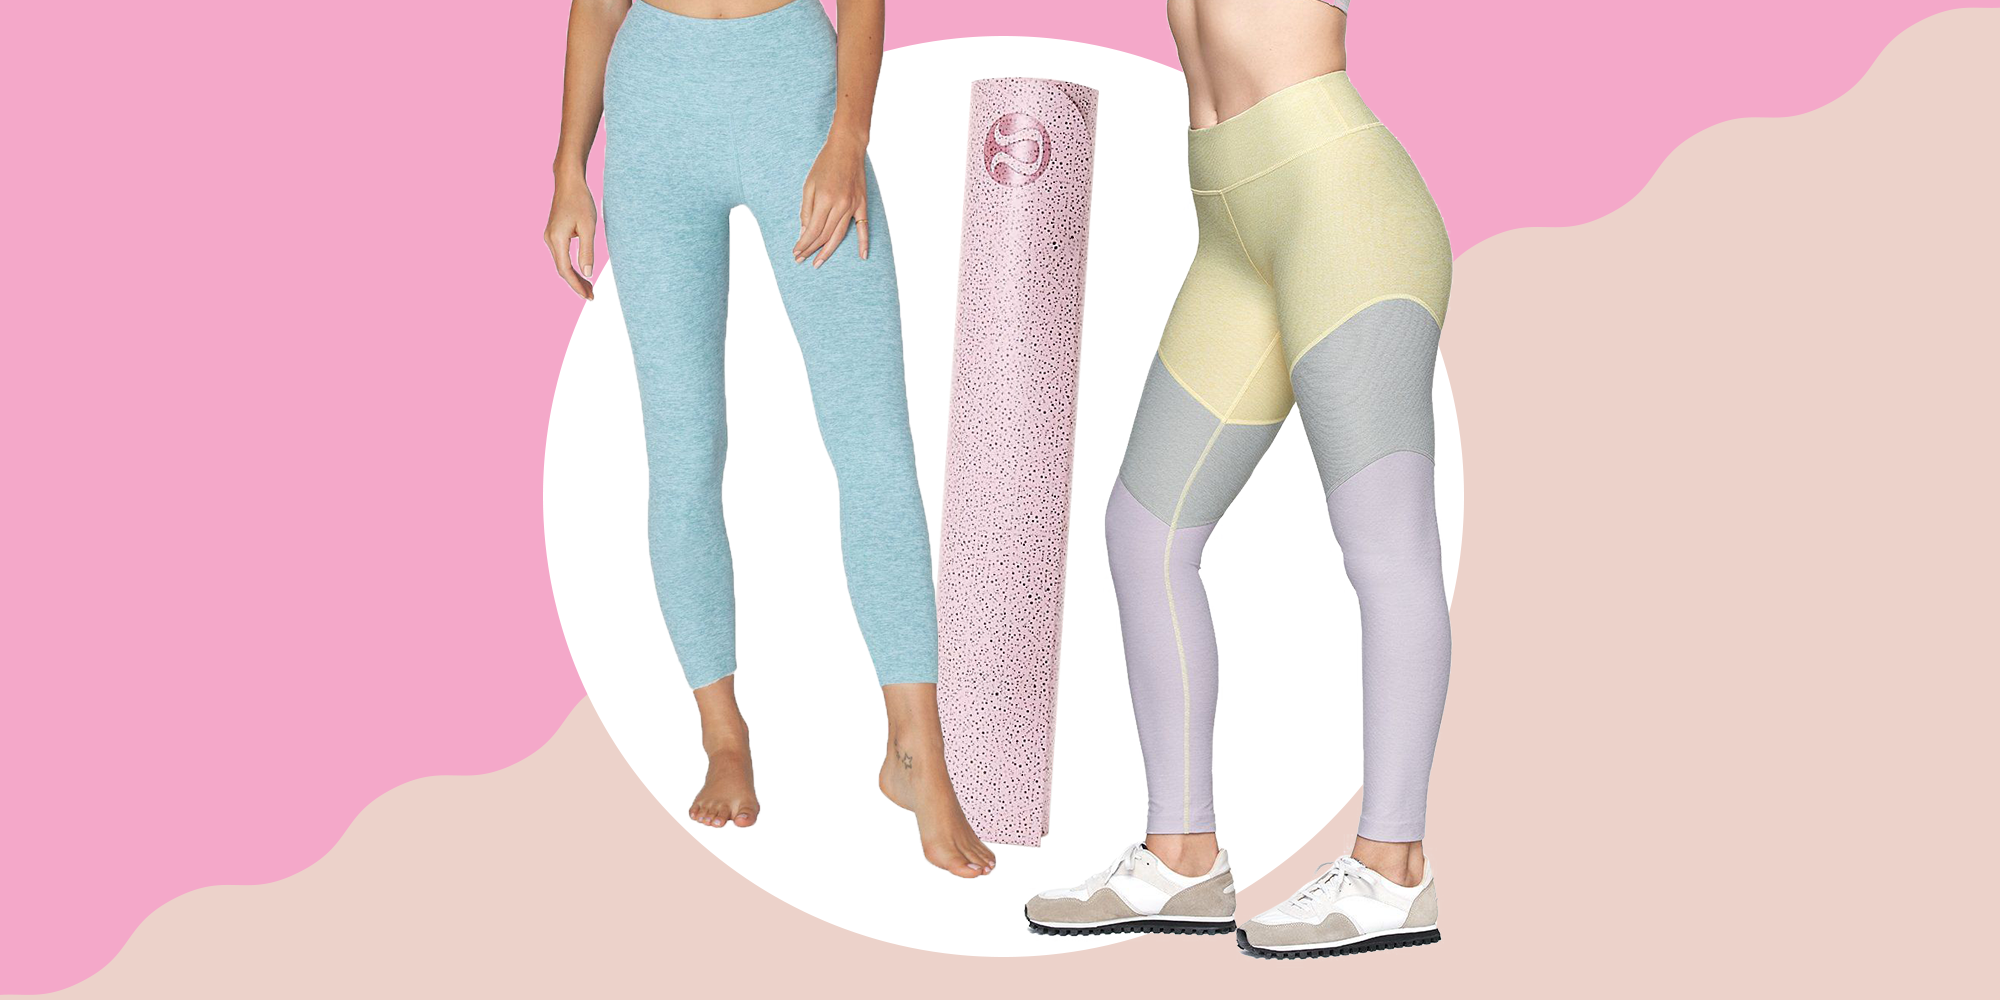 The 10 Best Yoga Brands, According To A Fitness Editor